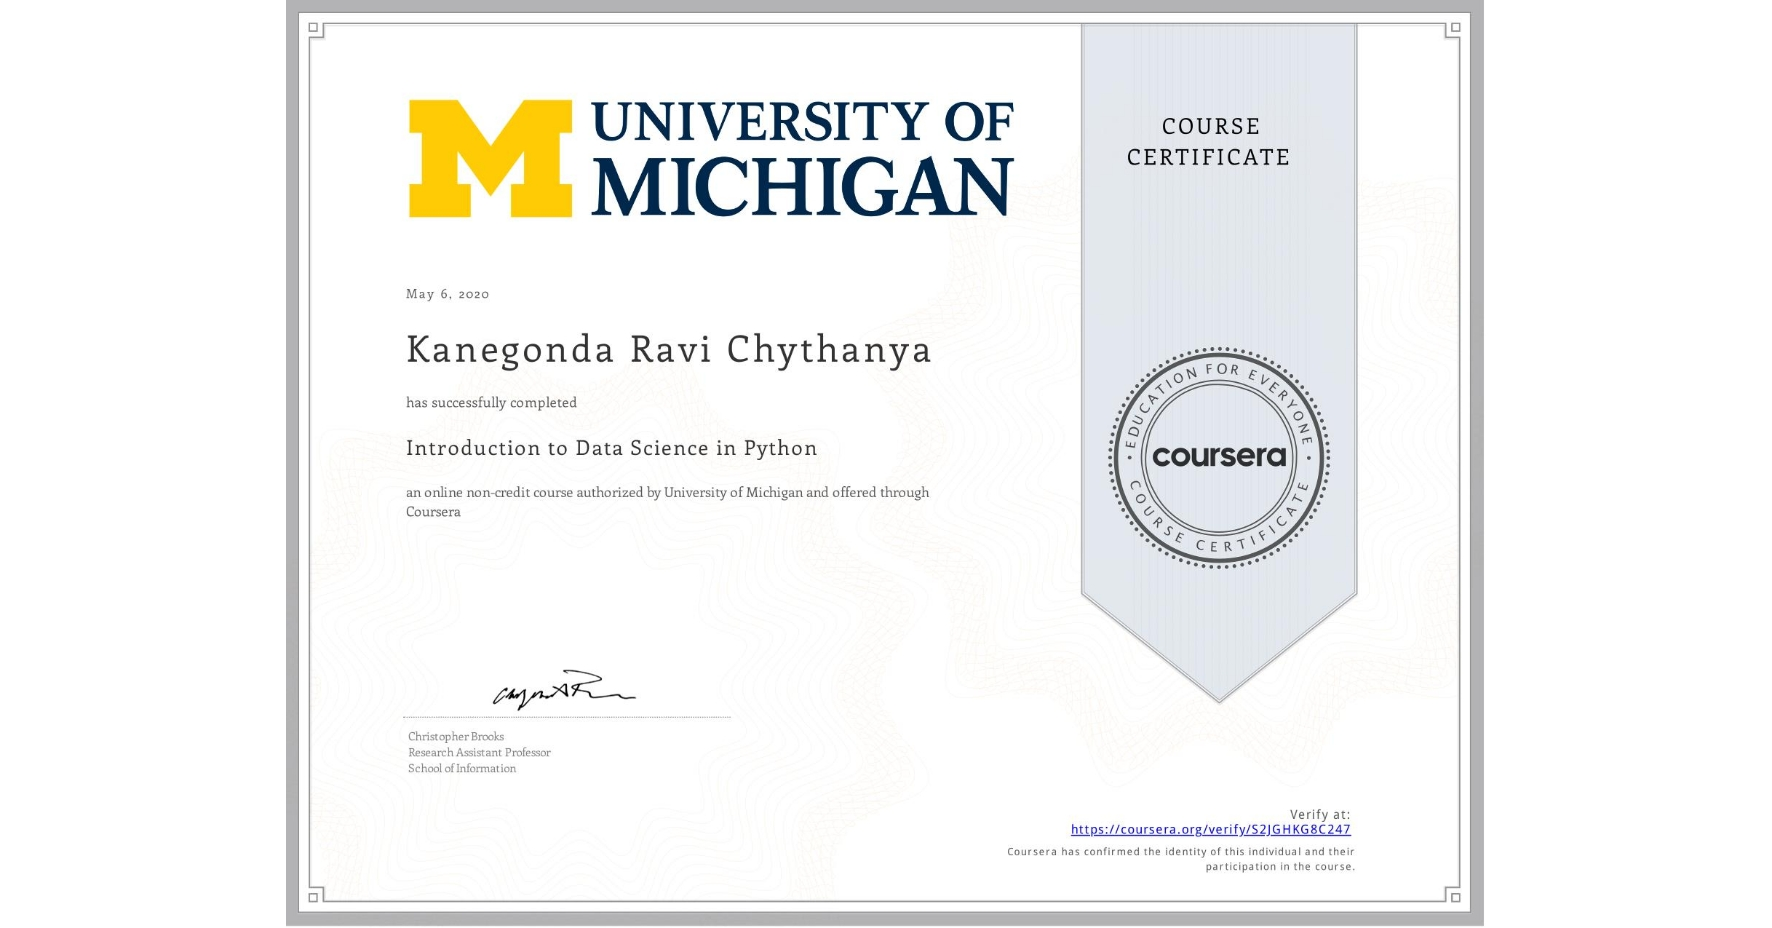 View certificate for Kanegonda Ravi Chythanya, Introduction to Data Science in Python, an online non-credit course authorized by University of Michigan and offered through Coursera